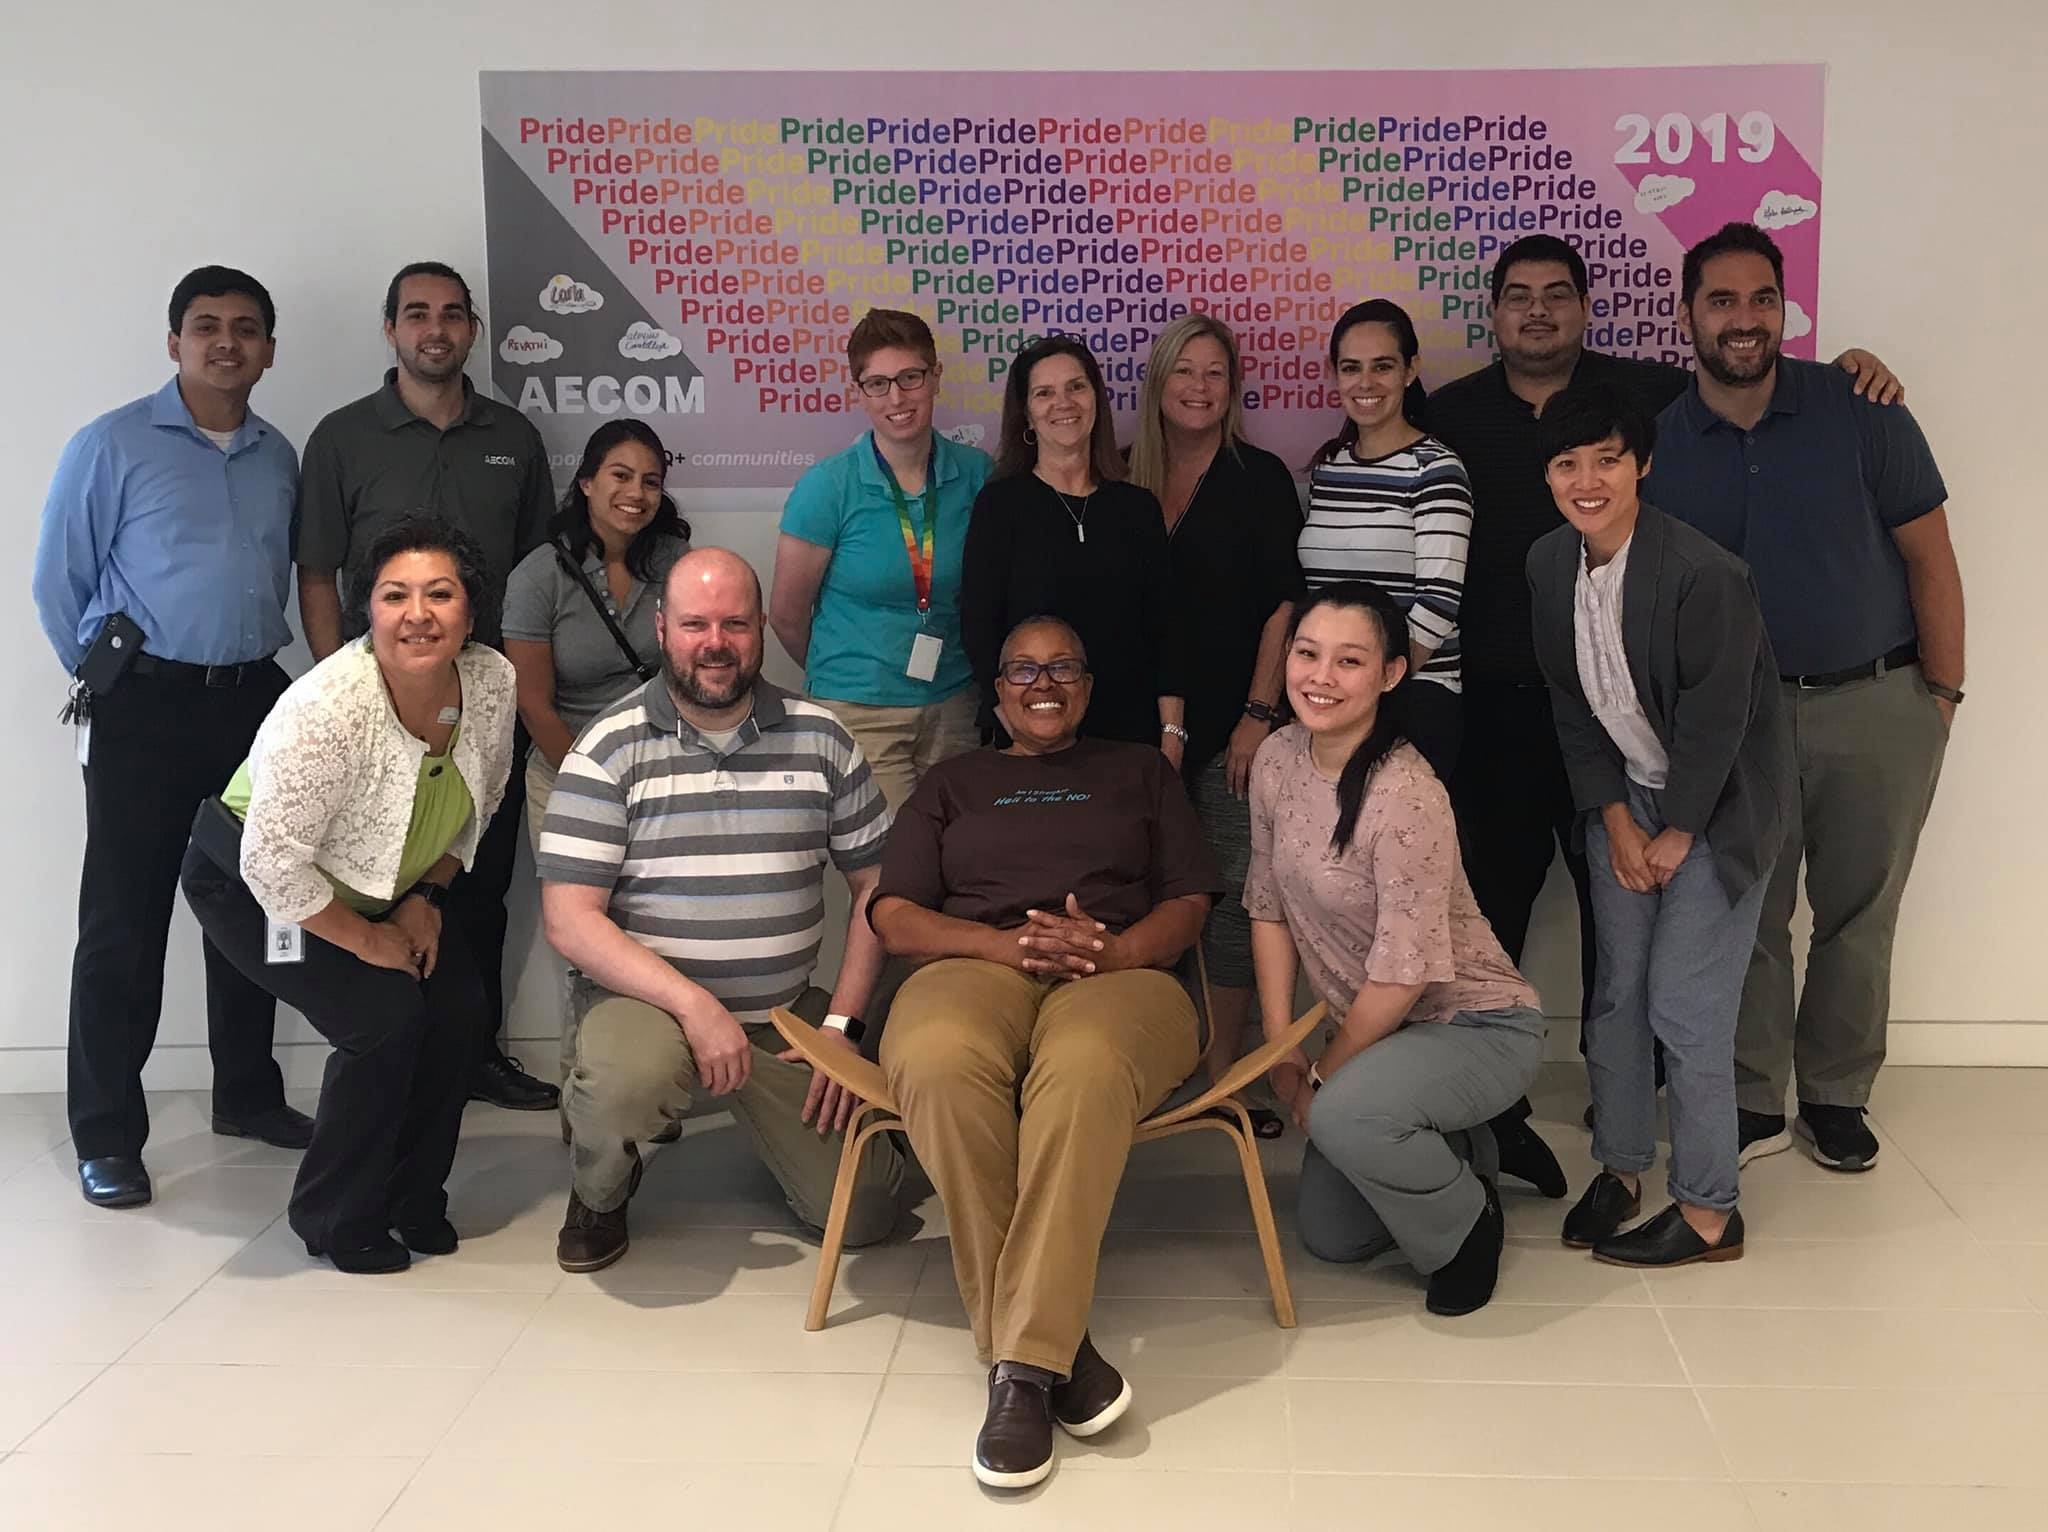 AECOM Employee PRIDE Group visiting with Silver Pride Project